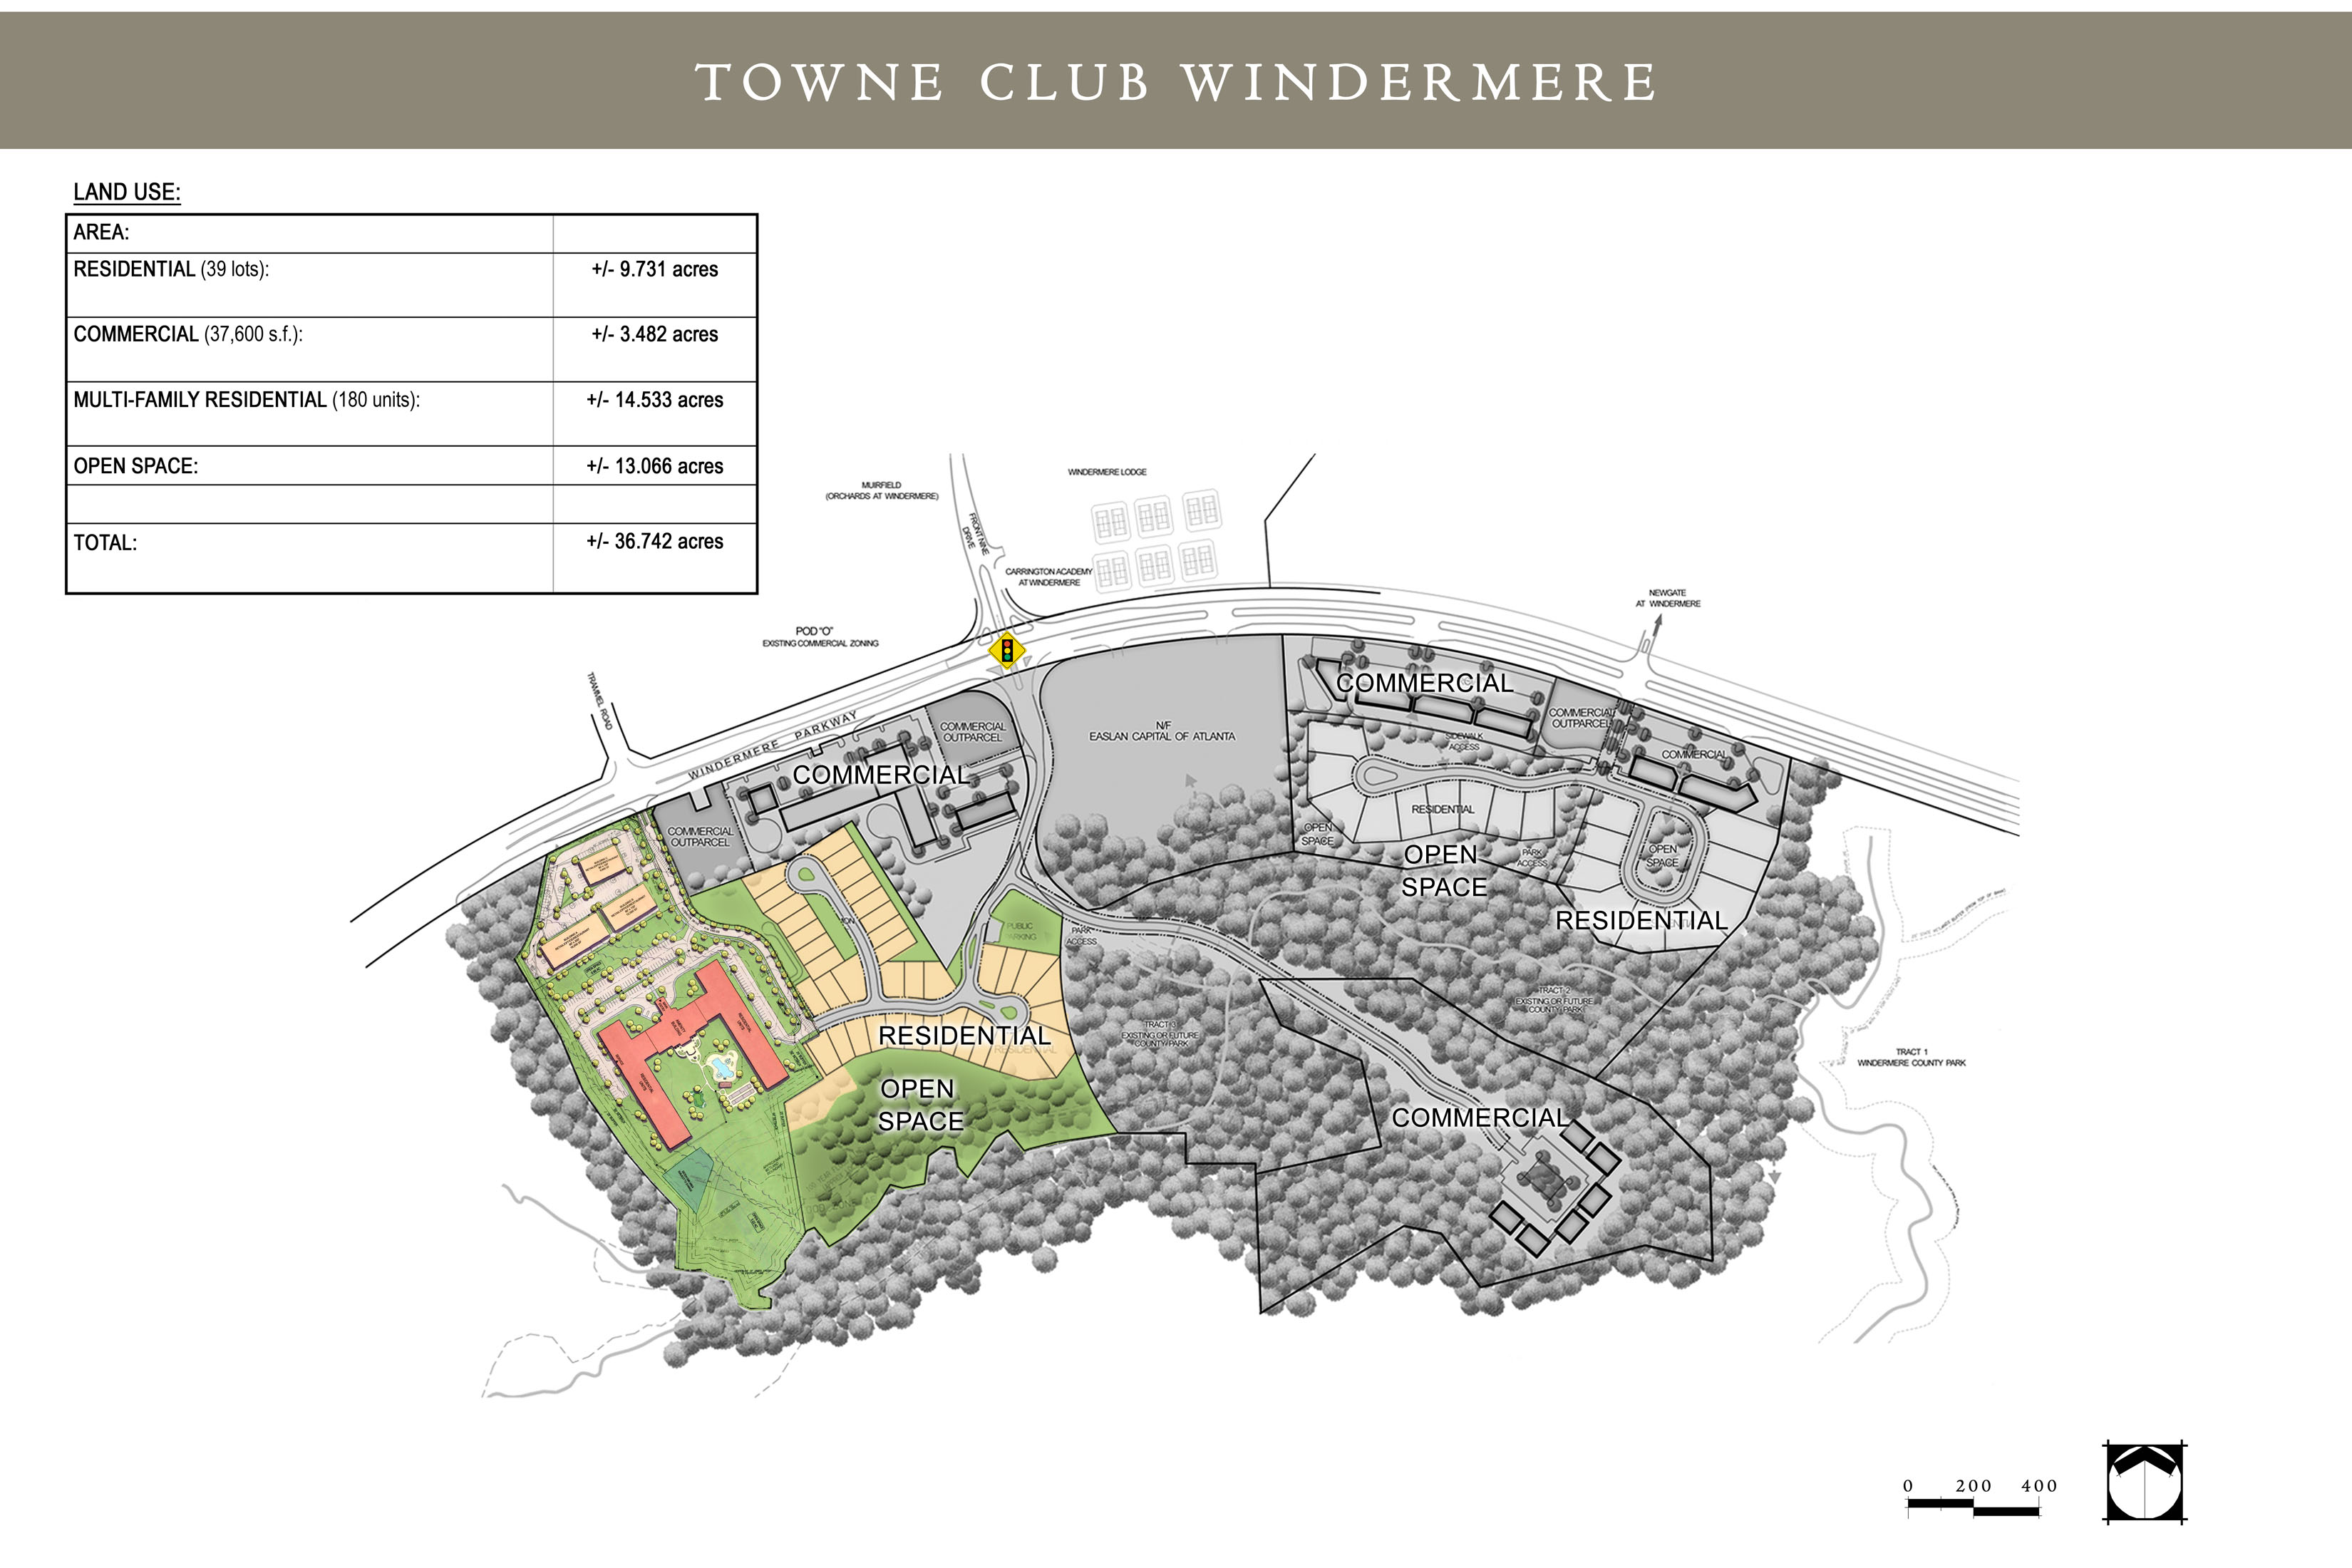 (6) SITE PLAN. Town Club Windermere.RHF.WCH Site Plan.11X17.12.5.08